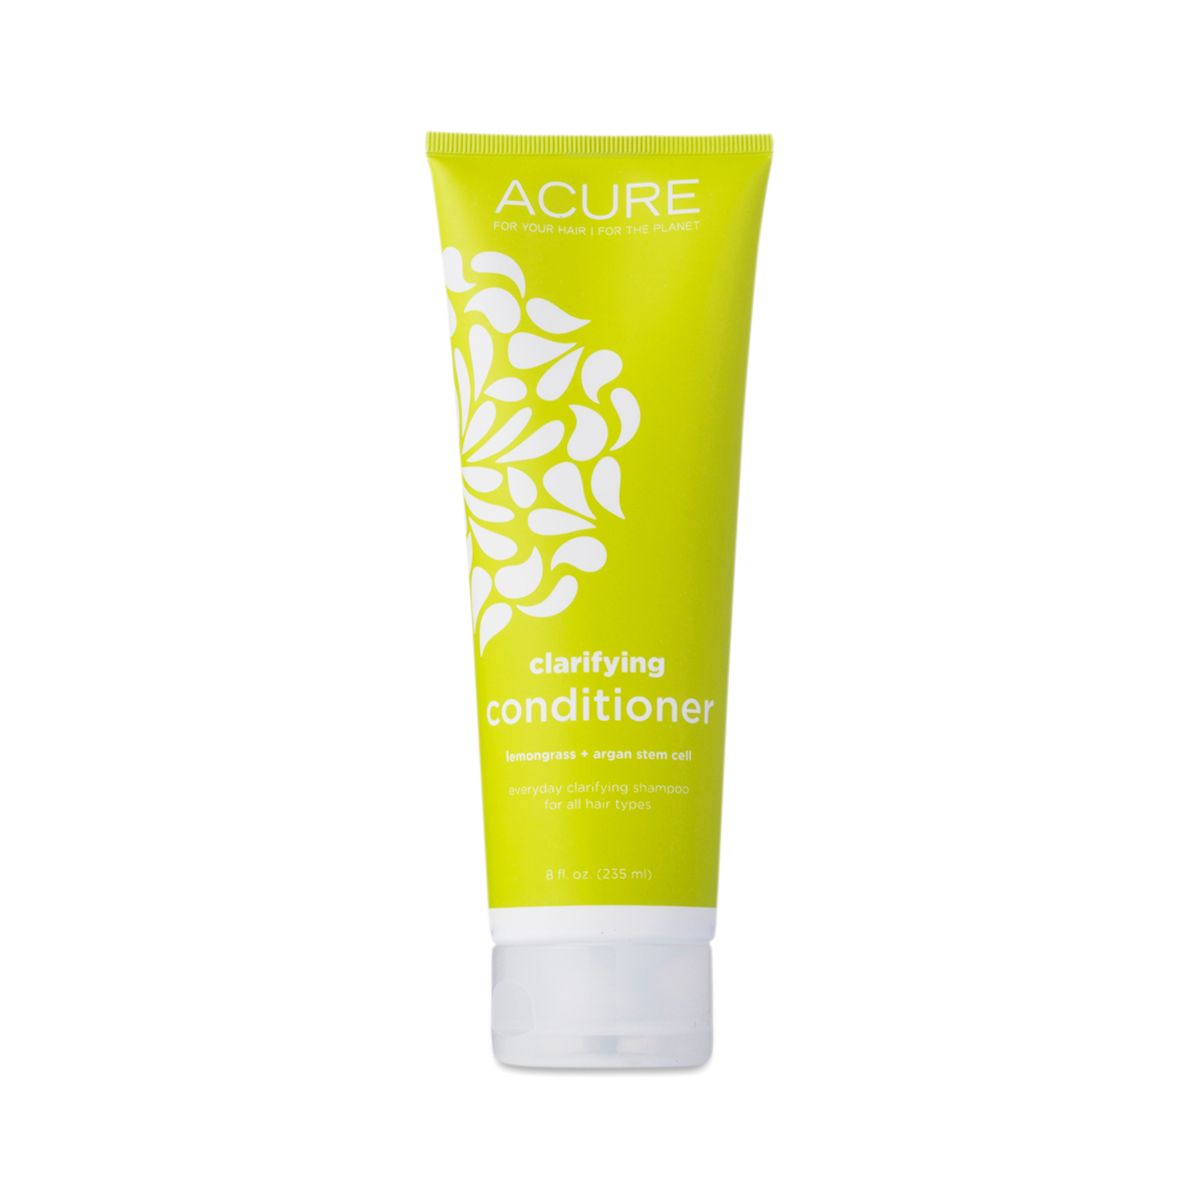 ACURE Curiously Clarifying Conditioner